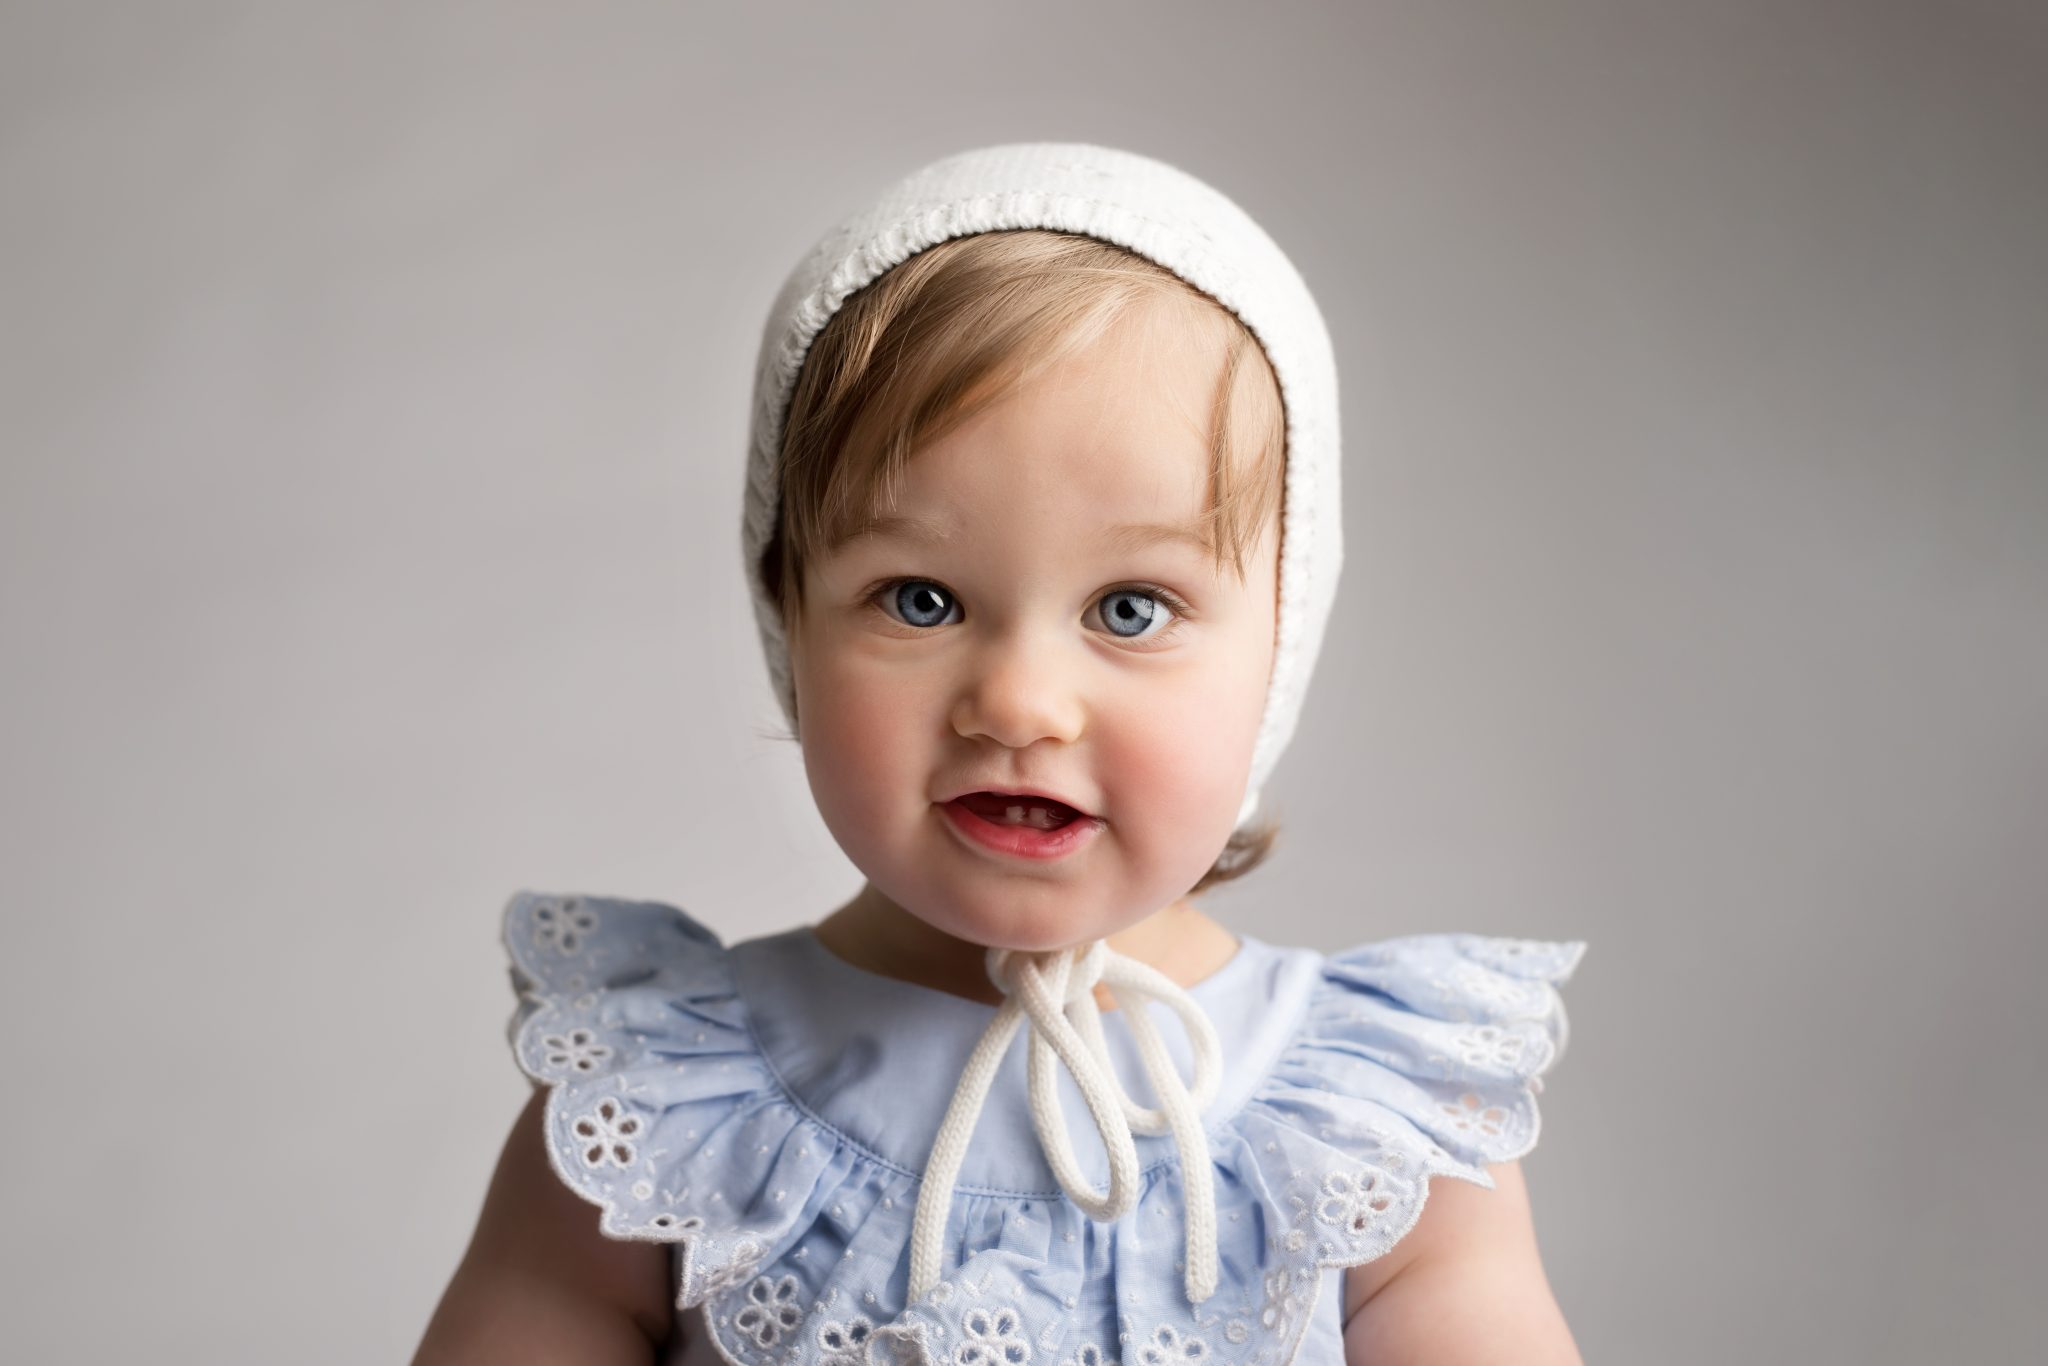 fifteen month old baby girl with blue eyes in white bonnet and blue dress